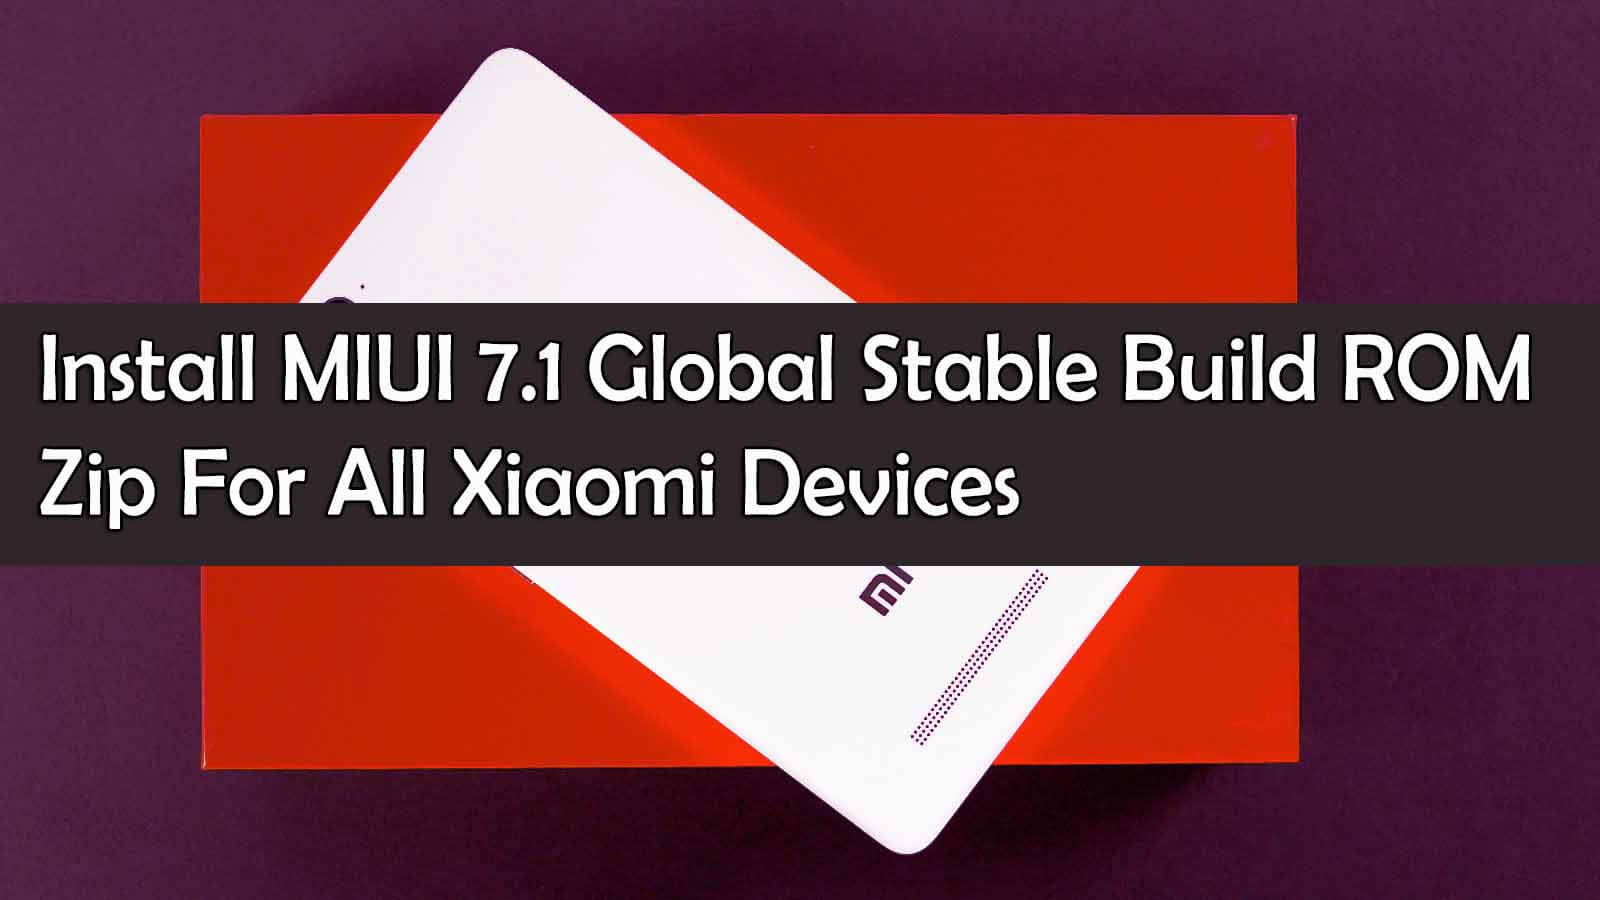 Install MIUI 7.1 Global Stable Build ROM Zip For All Xiaomi Devices